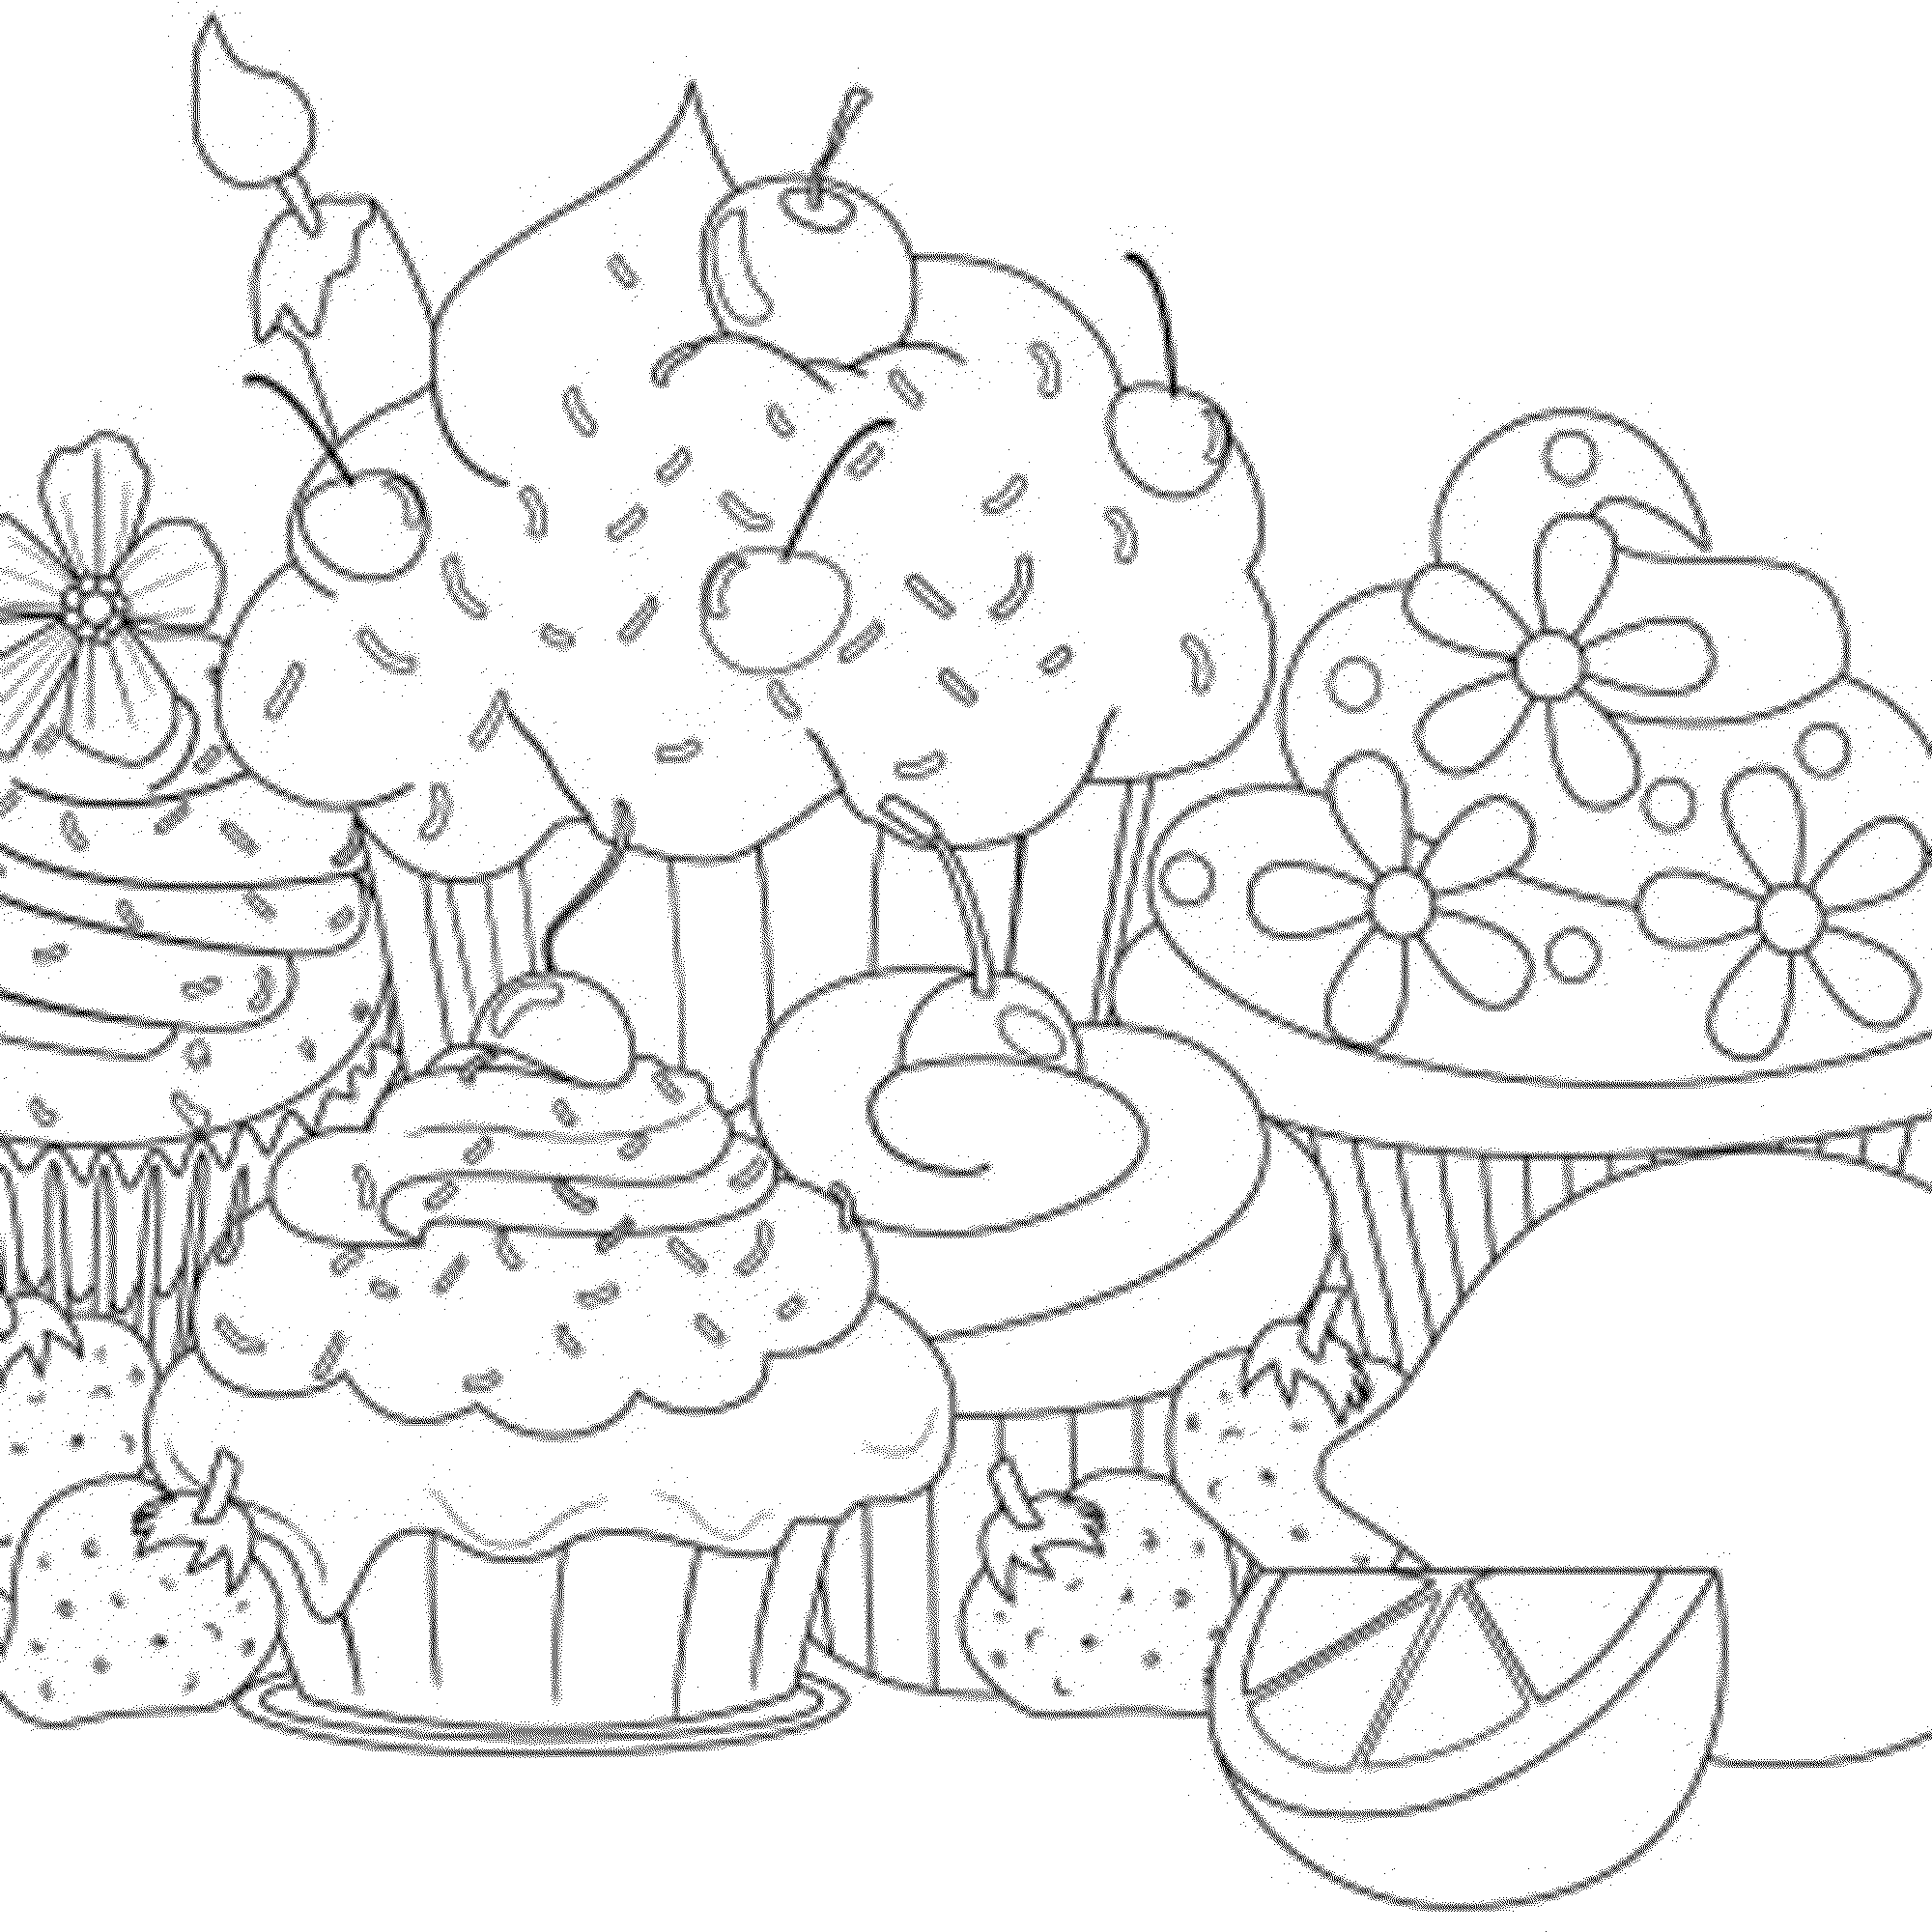 cupcakes coloring page color art therapy food and drinks